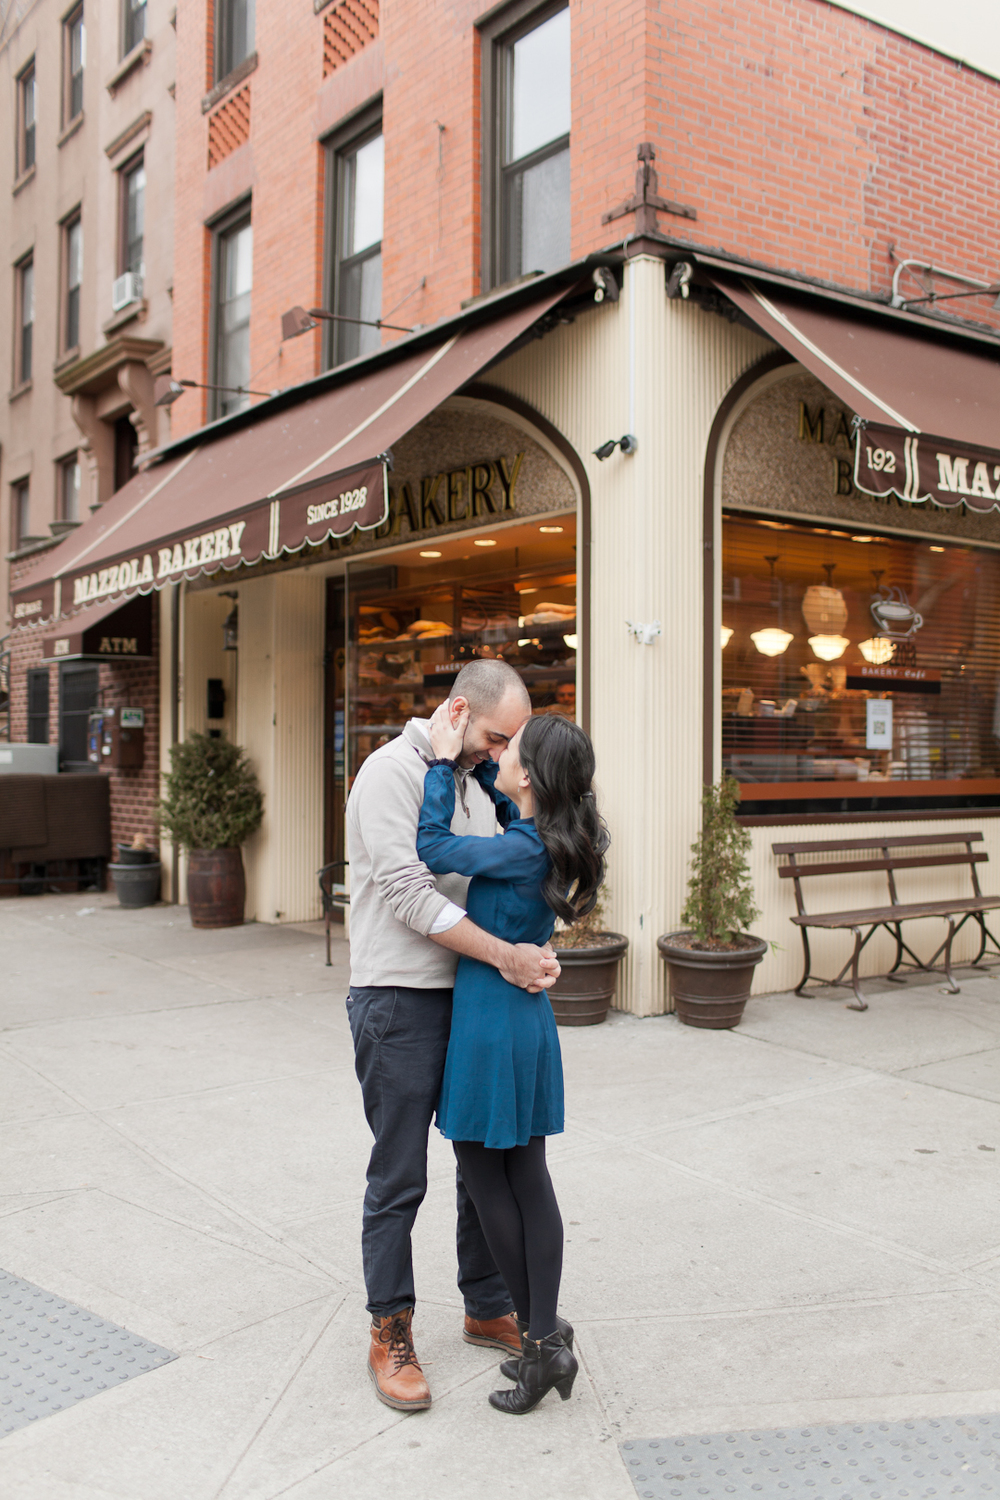 Melissa Kruse Photography - Kristine & David Engagement Photos-110.jpg